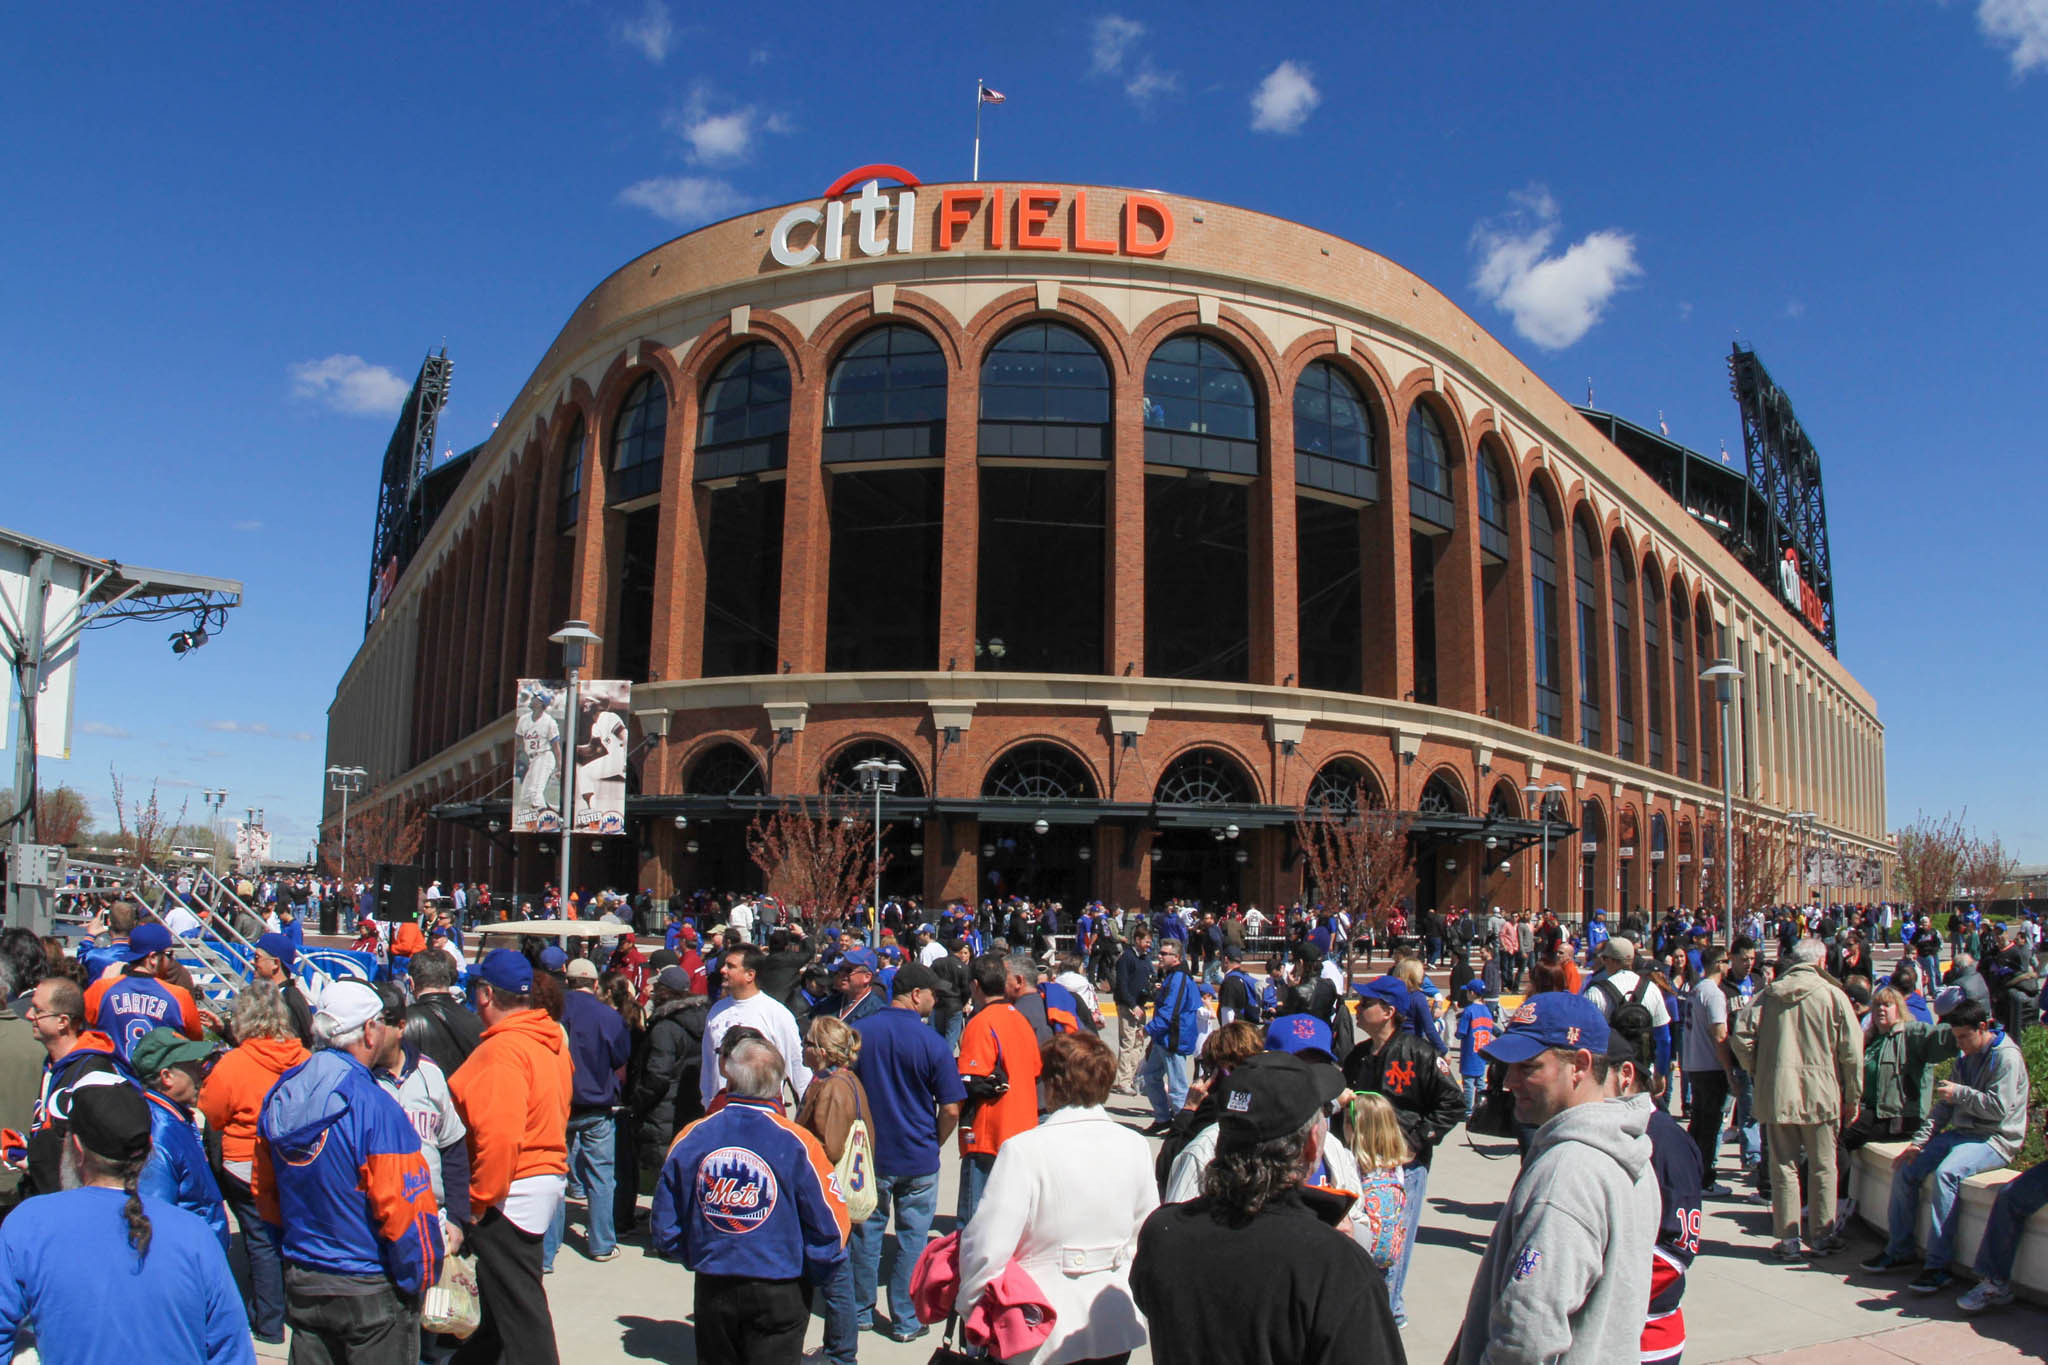 …or the Mets at Citi Field